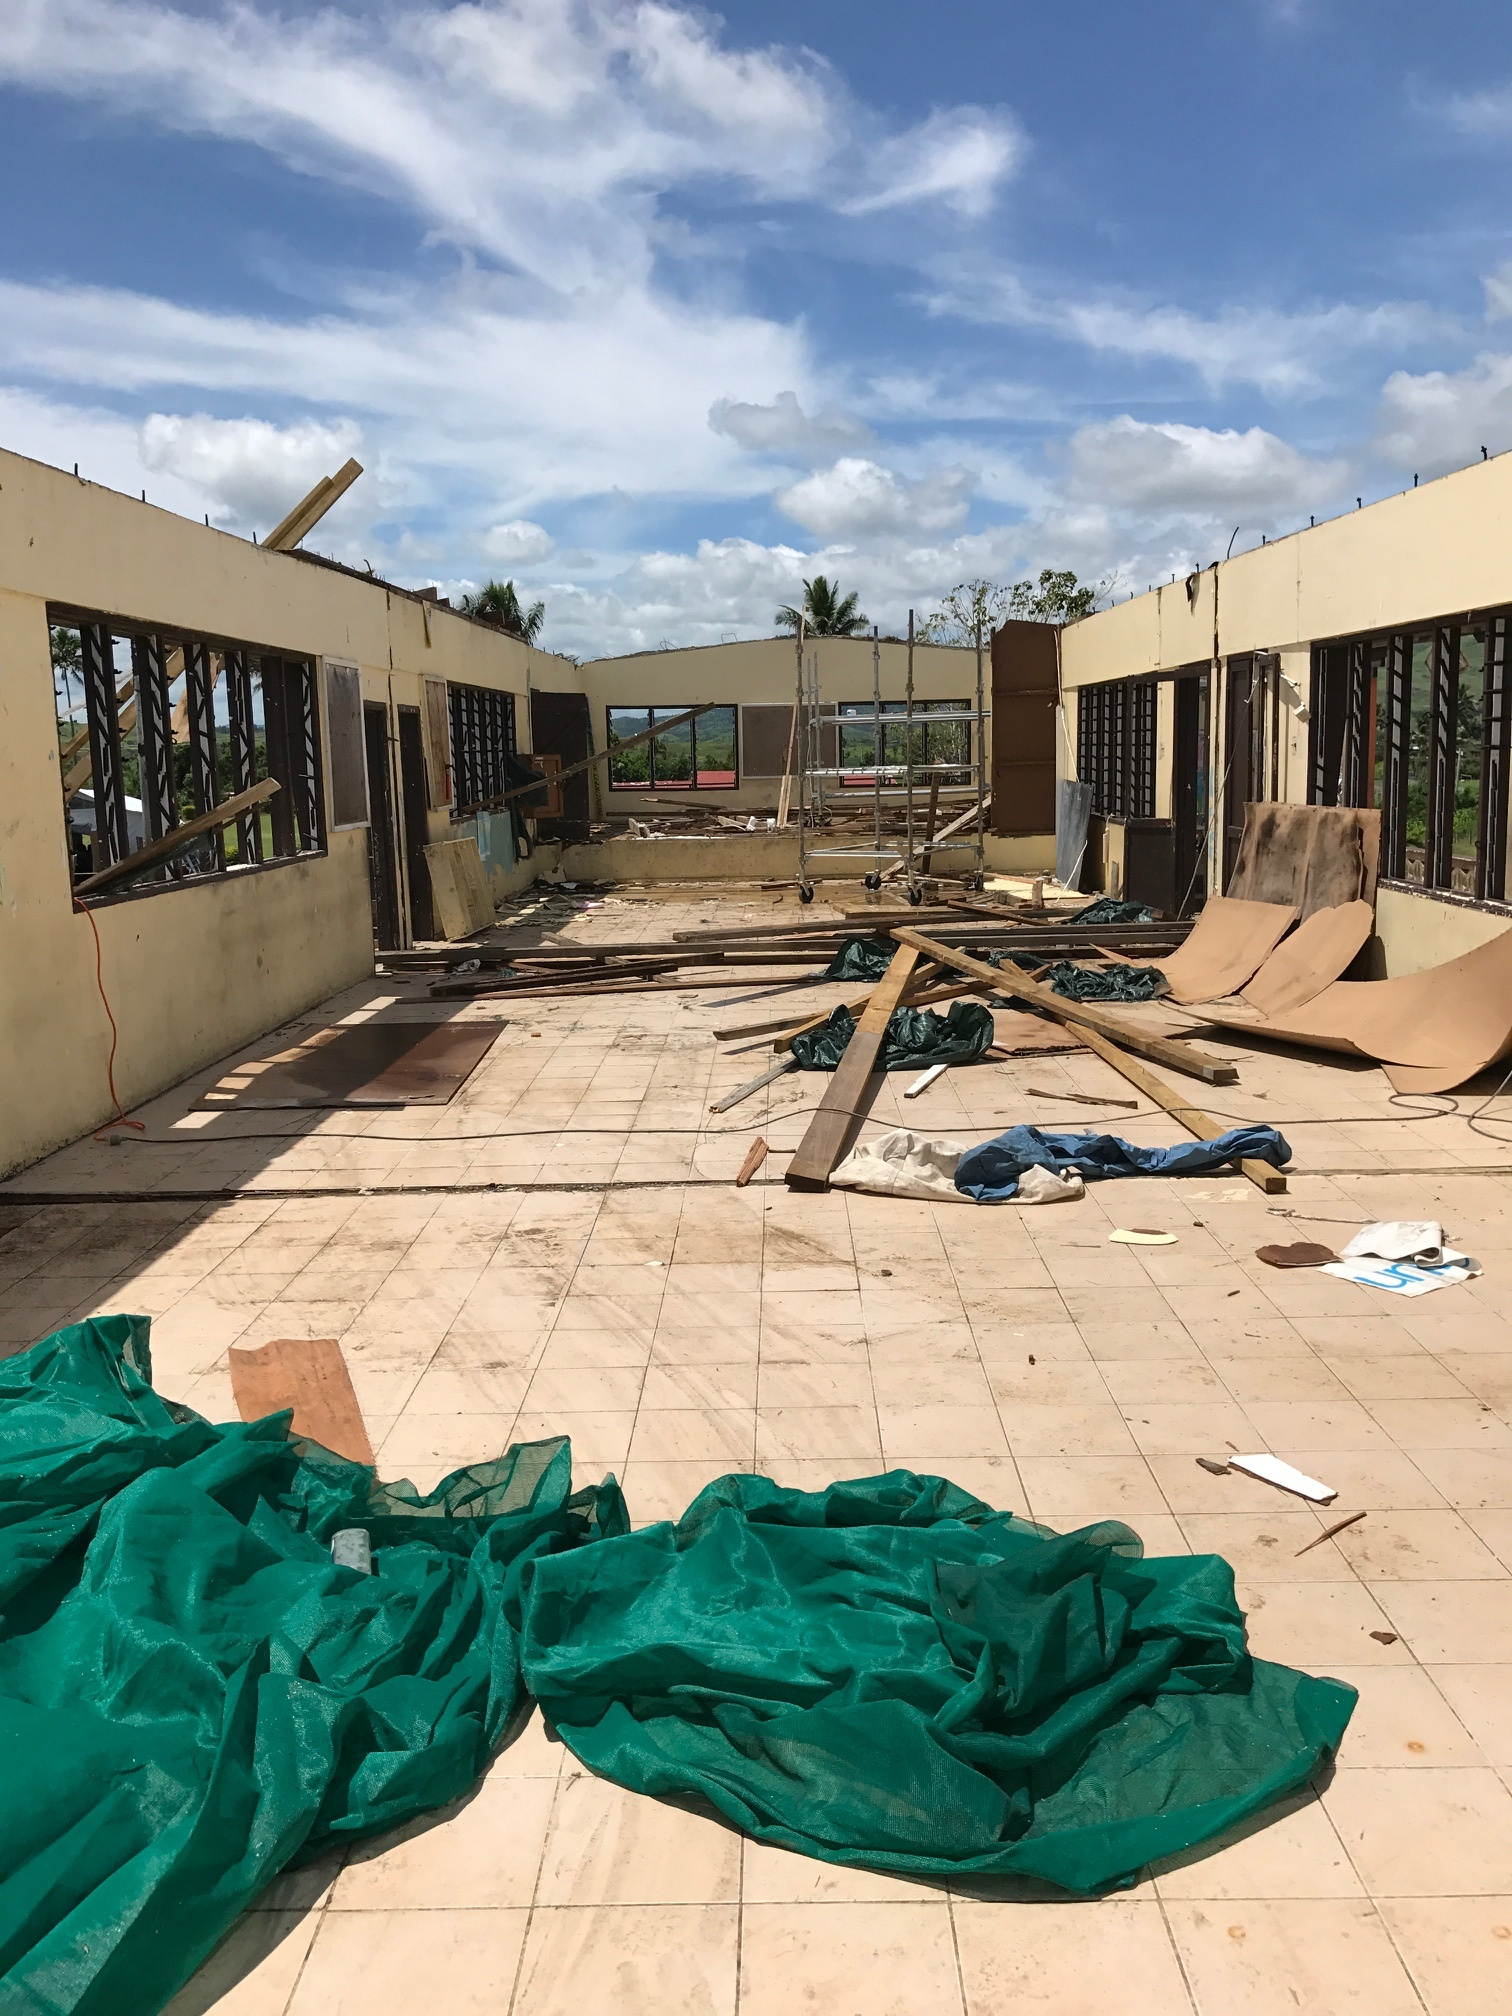 Build Back Better and Safer, follow the construction works on cyclone- hit Vunikavikaloa Primary School in Ra, Fiji